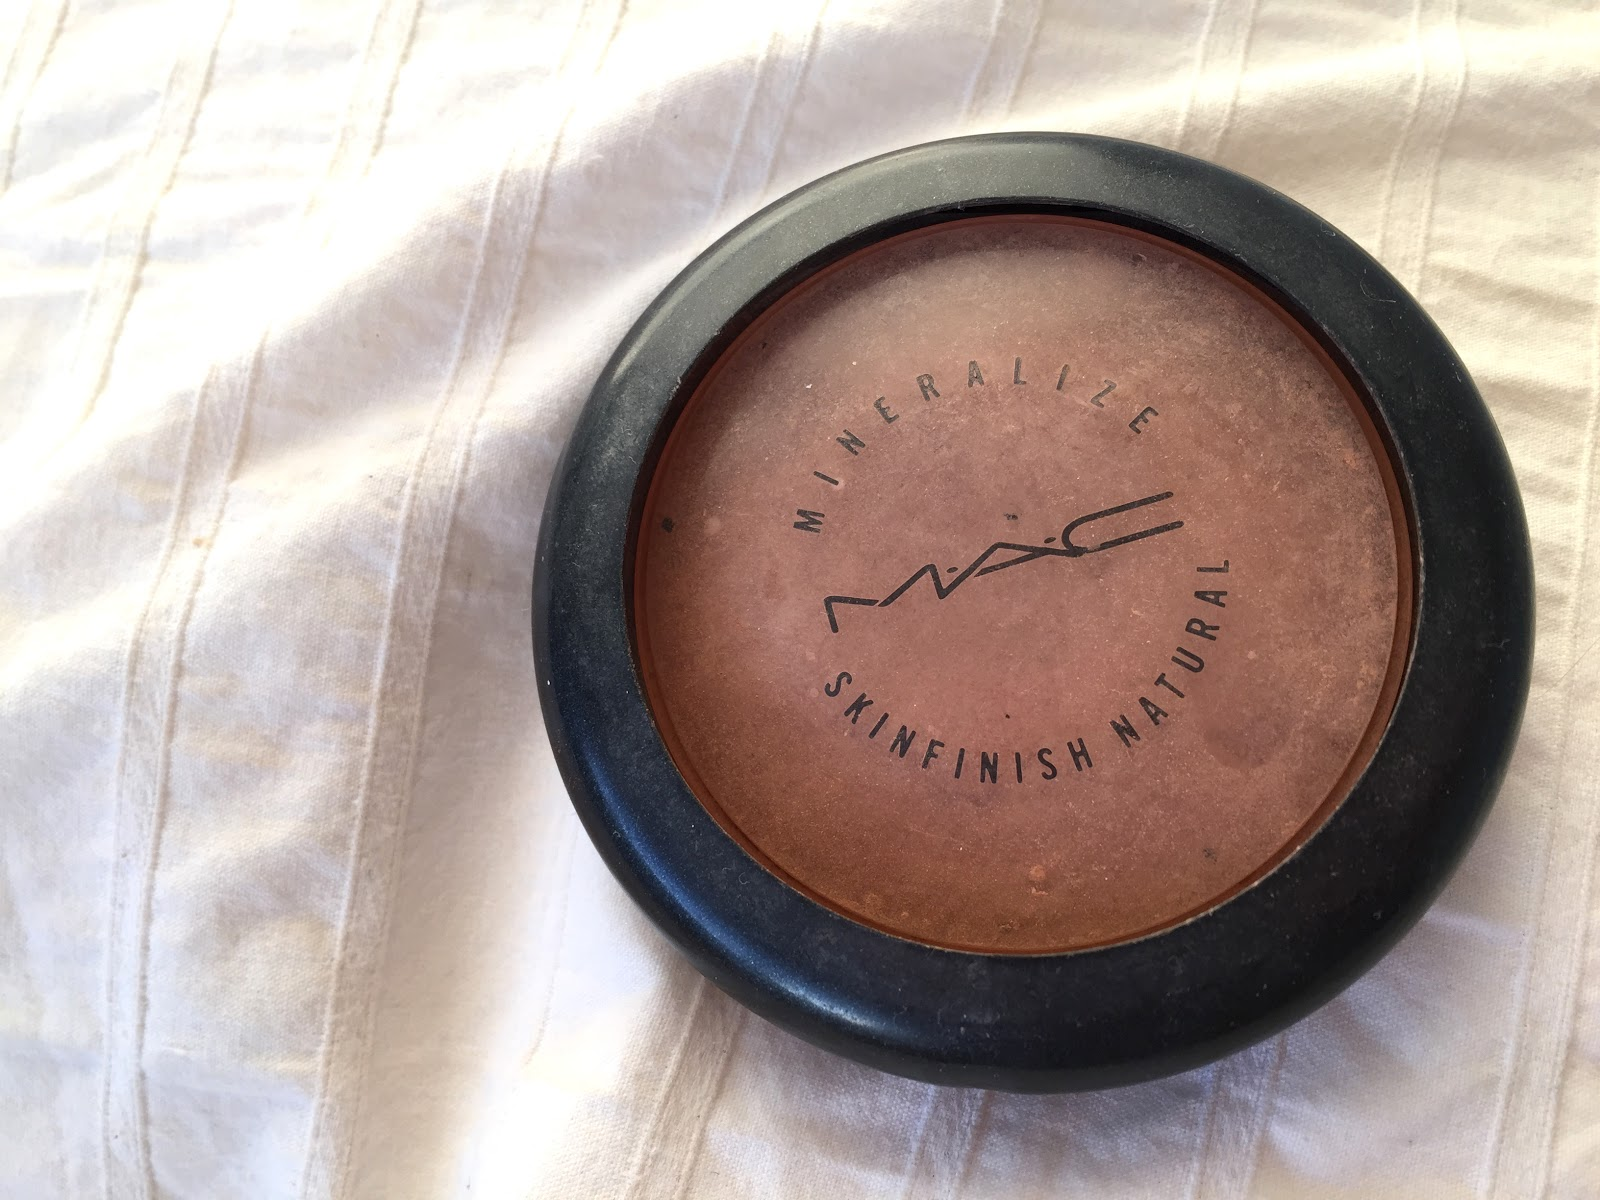 MAC, MAC powder, MAC bronzer, mineralize skinfinish,mac bronzer review